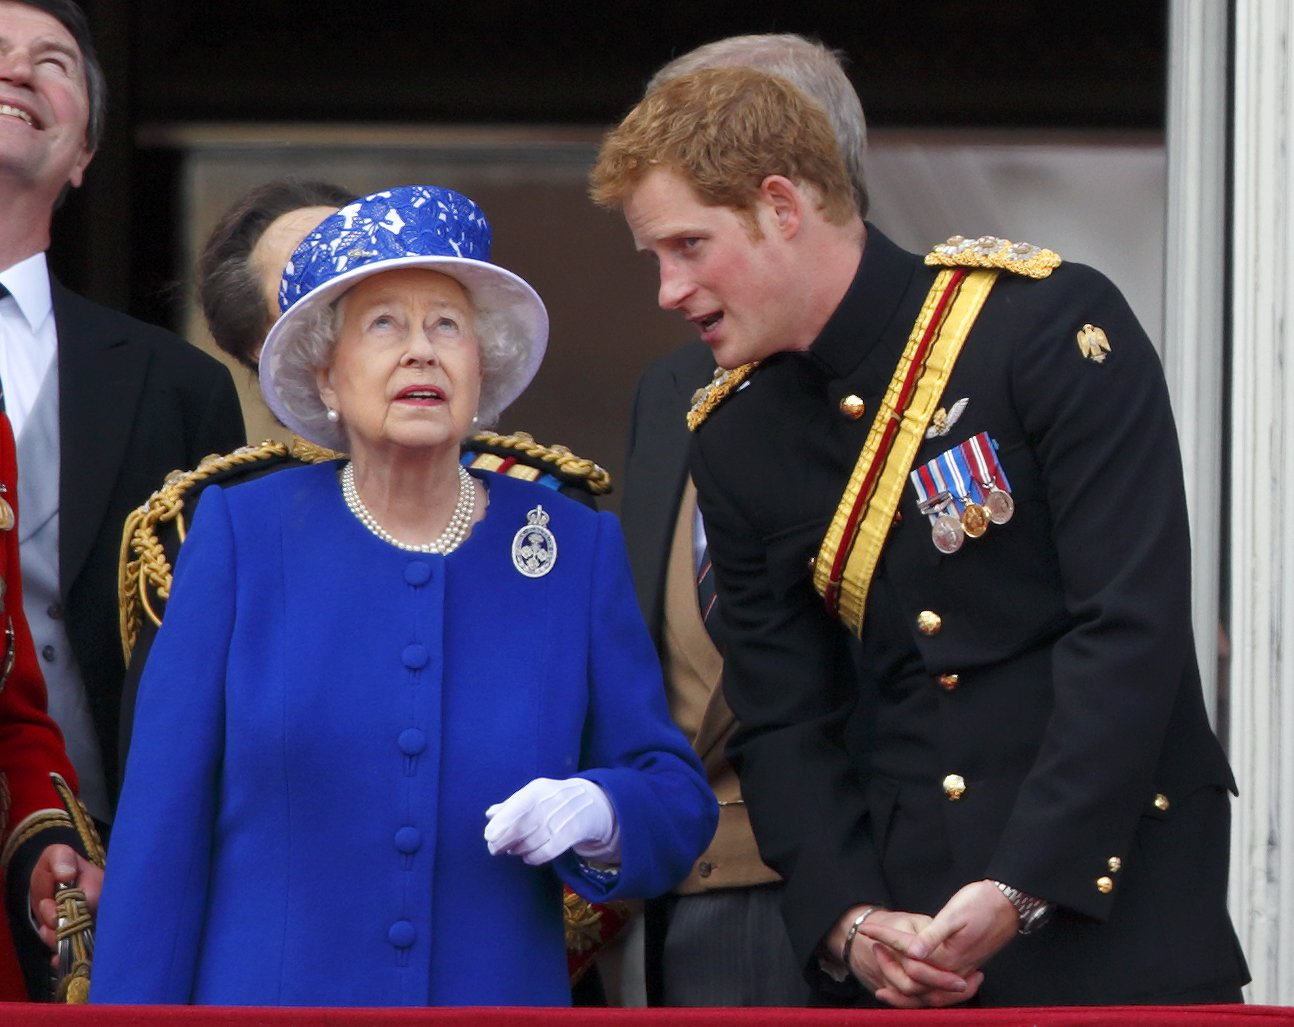 Prince Harry admits he 'panics' at sight of the Queen in Buckingham Palace